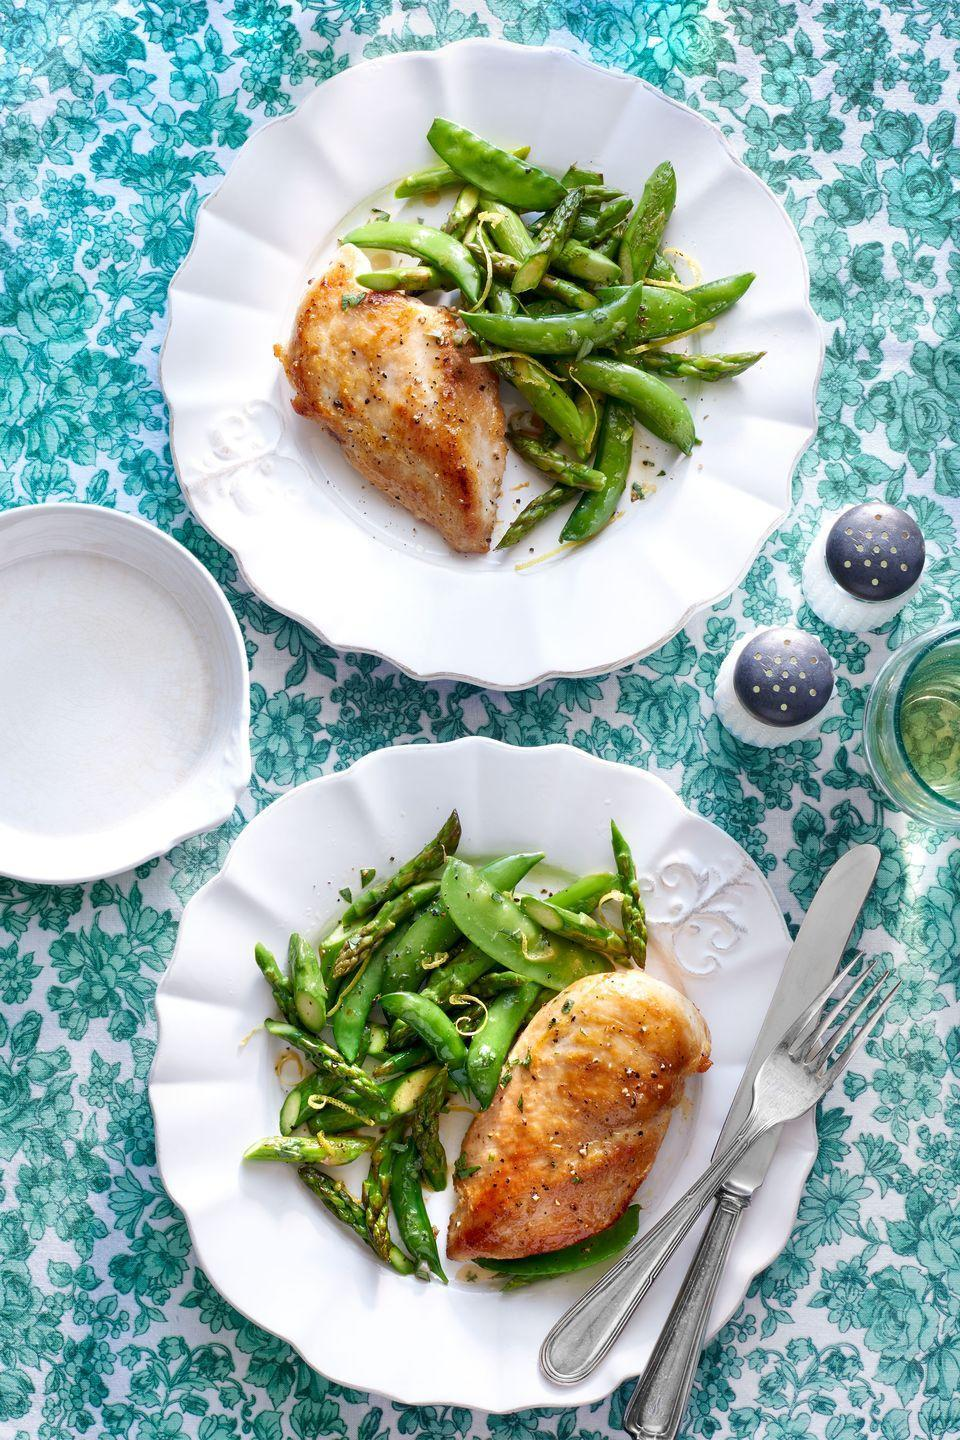 "<p>Fresh spring vegetables are an easy (and healthy!) way to upgrade a classic chicken dinner. Bonus: This dish takes less than 25 minutes to prepare. </p><p><strong><a href=""https://www.countryliving.com/food-drinks/recipes/a276/skillet-chicken-spring-vegetables-recipe-clx0315/"" rel=""nofollow noopener"" target=""_blank"" data-ylk=""slk:Get the recipe."" class=""link rapid-noclick-resp"">Get the recipe.</a></strong></p>"